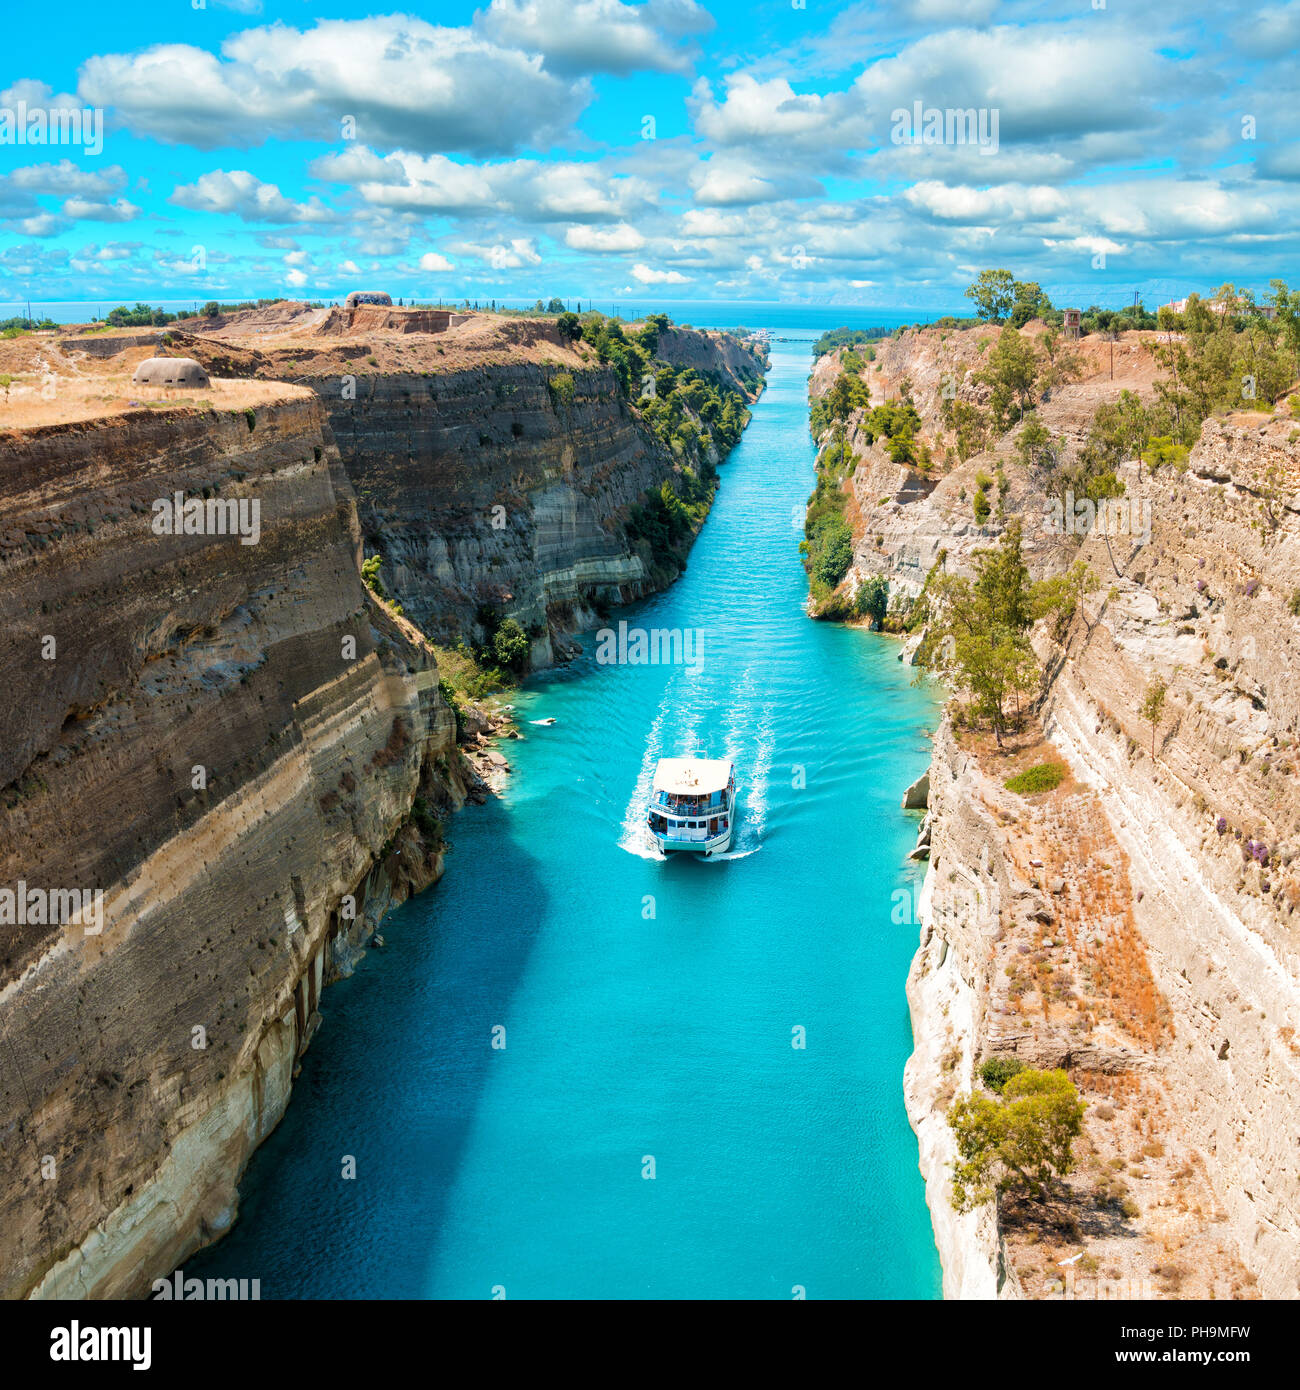 Beautiful scenery of the Corinth Canal in a bright sunny day against a blue sky with white clouds. White ship floating among the rocks Stock Photo